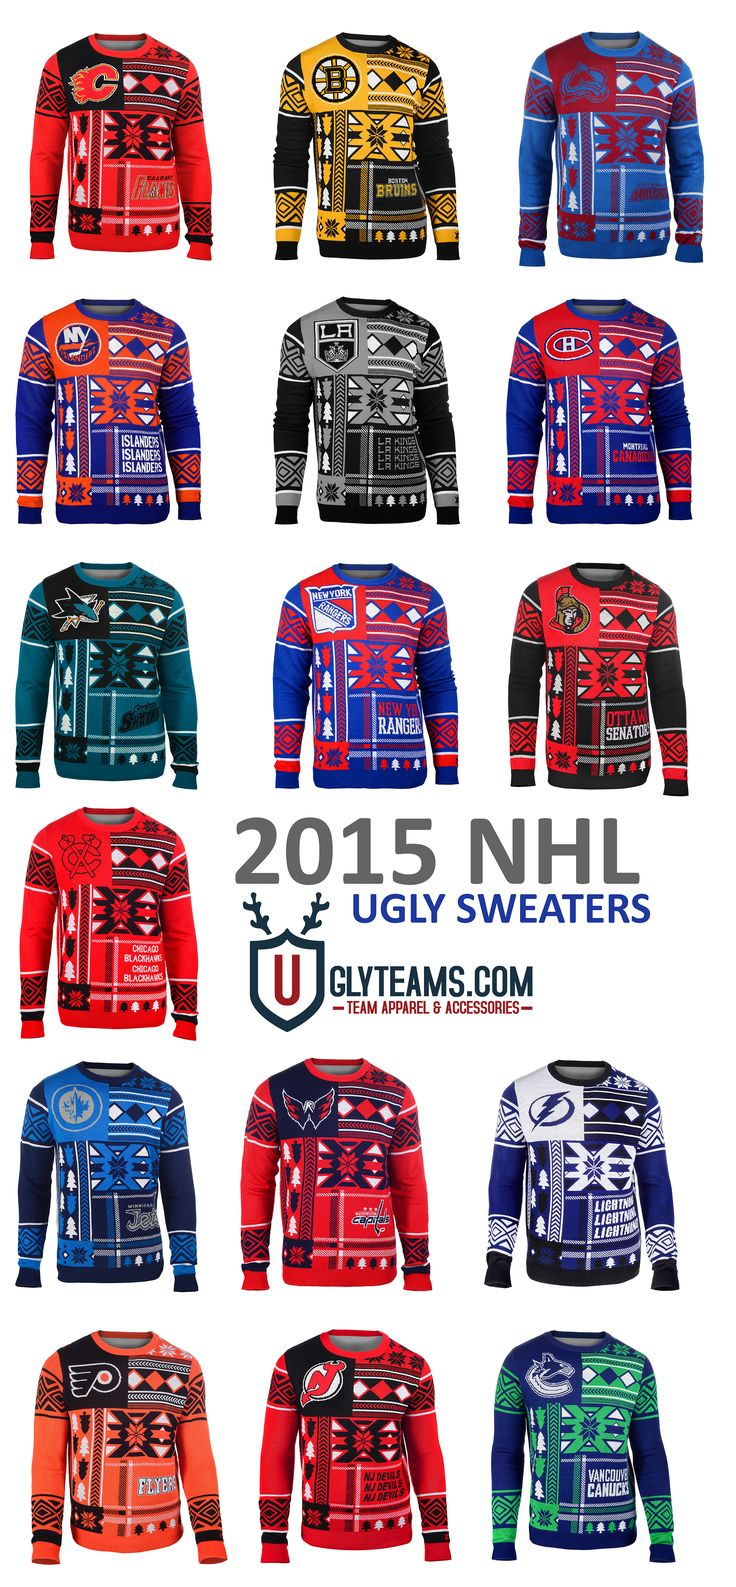 2105 NHL Ugly Sweaters from Uglyteams